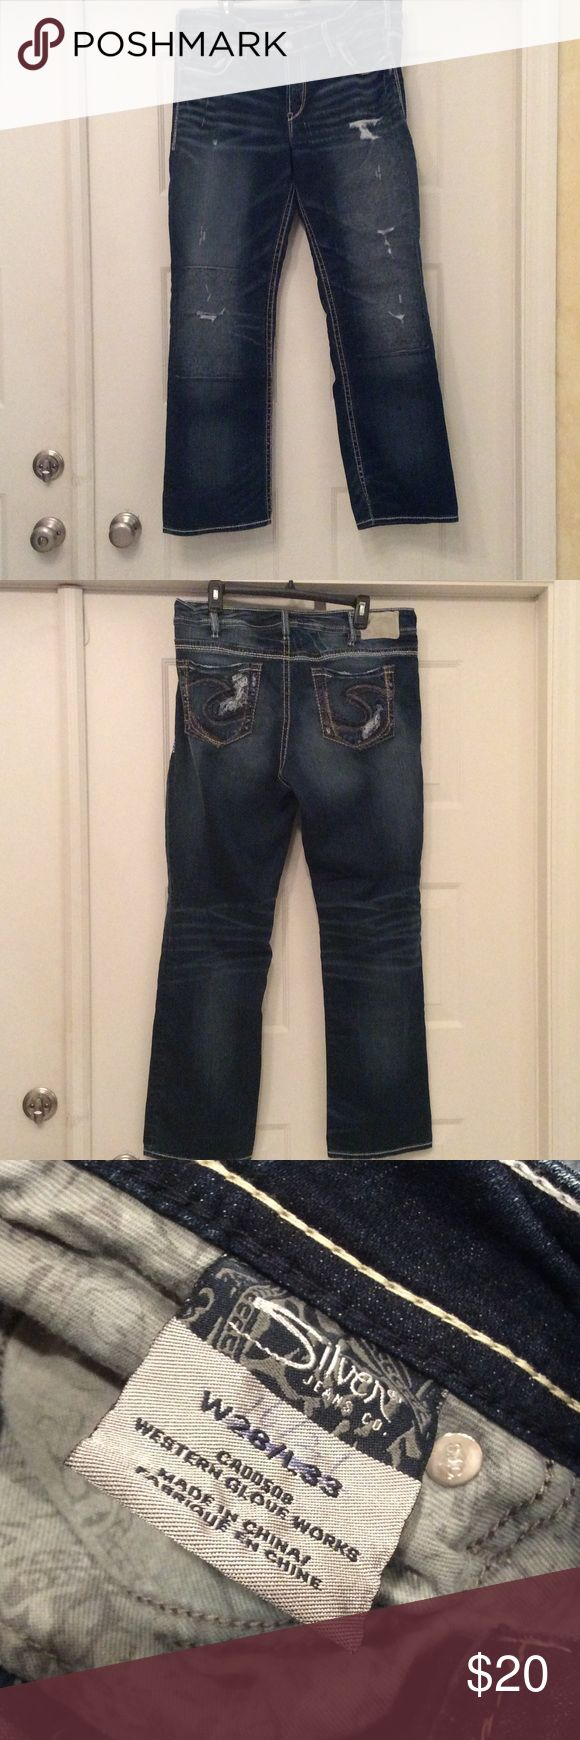 """Silver sukiyaki Denim Jeans W28/33 regular 16/31 Silver Suki dark wash Denim boot cut jeans tag W28 L 33 ladies size 16,  rise 10"""" inches, inseam 31. Have been worn several times. Distressed, fading, Whiskering , frayed hem, Style W93616SAI394. Signature white tag on waistline, jeans have a patch inside both leg . On the original tag I wrote the size 16/31 . 78% cotton 13% rayon 1% elastase,  Need more photo please ask Silver Jeans Jeans Boot Cut"""